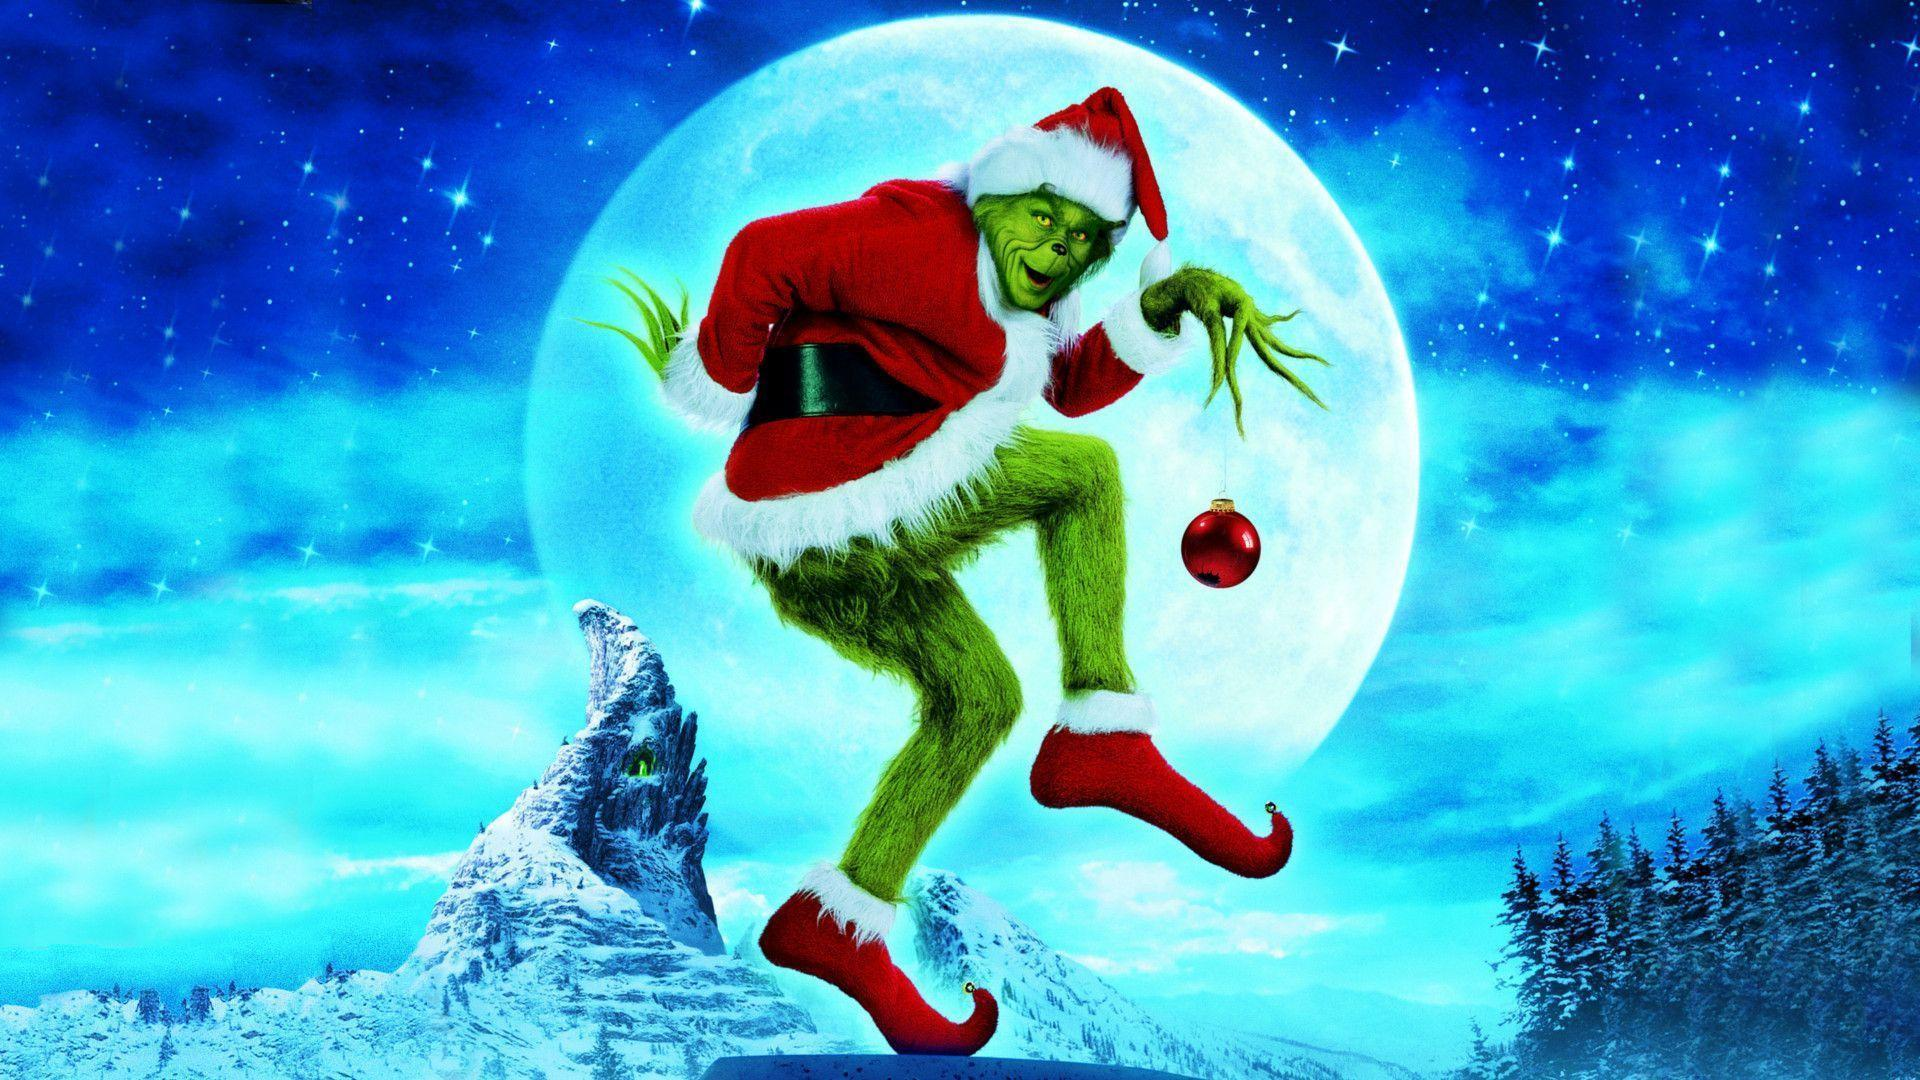 Cute Grinch Wallpapers Top Free Cute Grinch Backgrounds